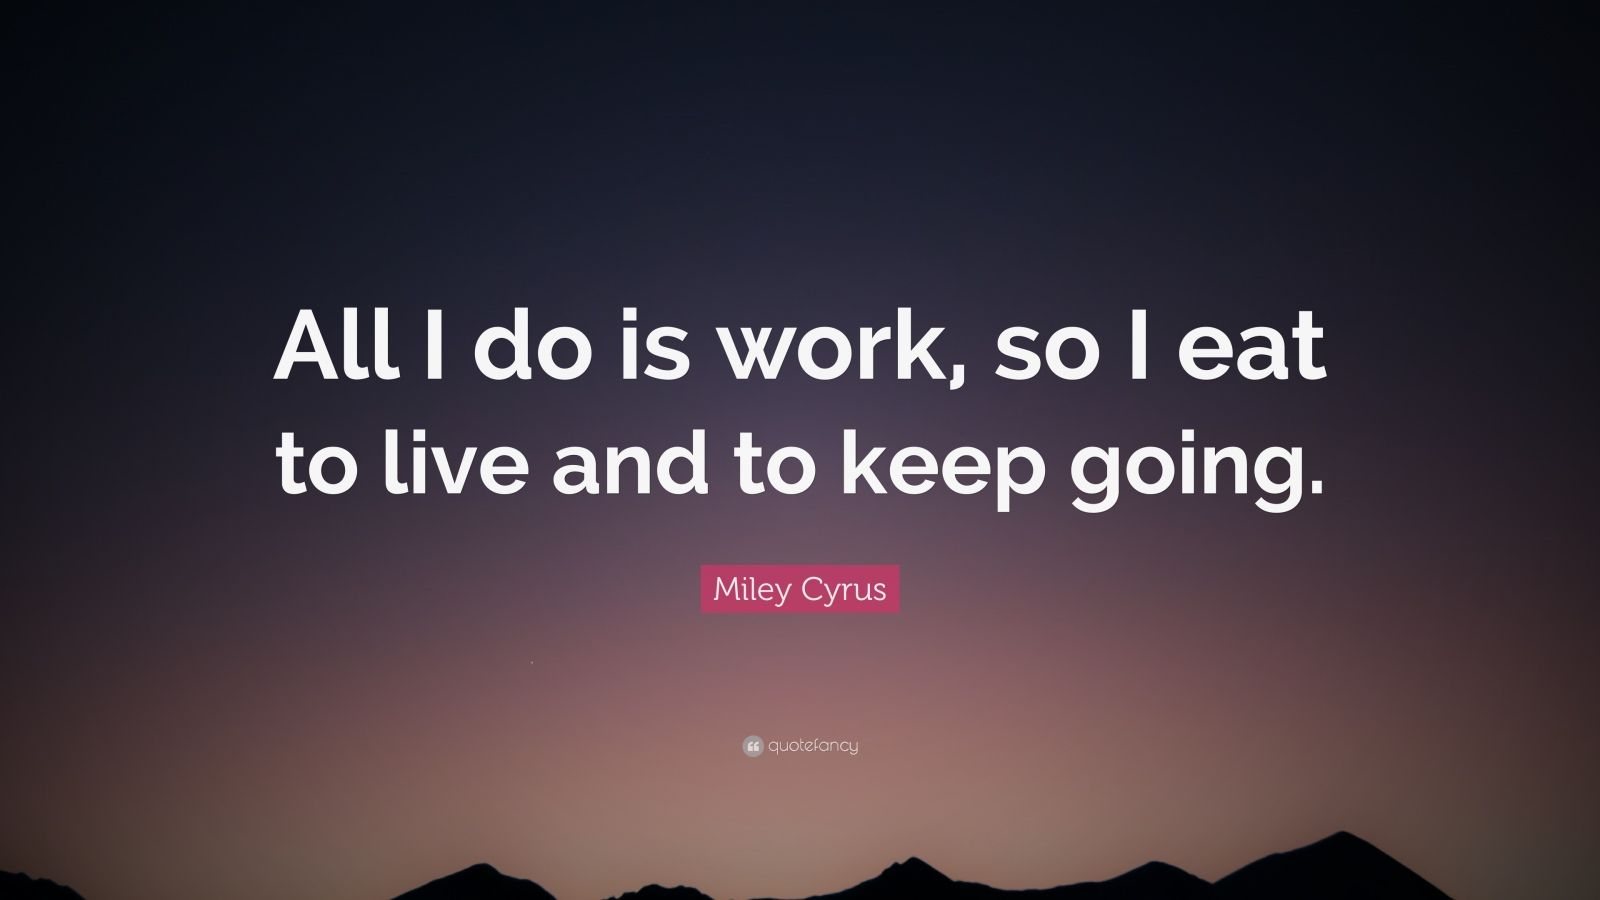 """Miley Cyrus Quote: """"All I do is work, so I eat to live and to keep going."""""""